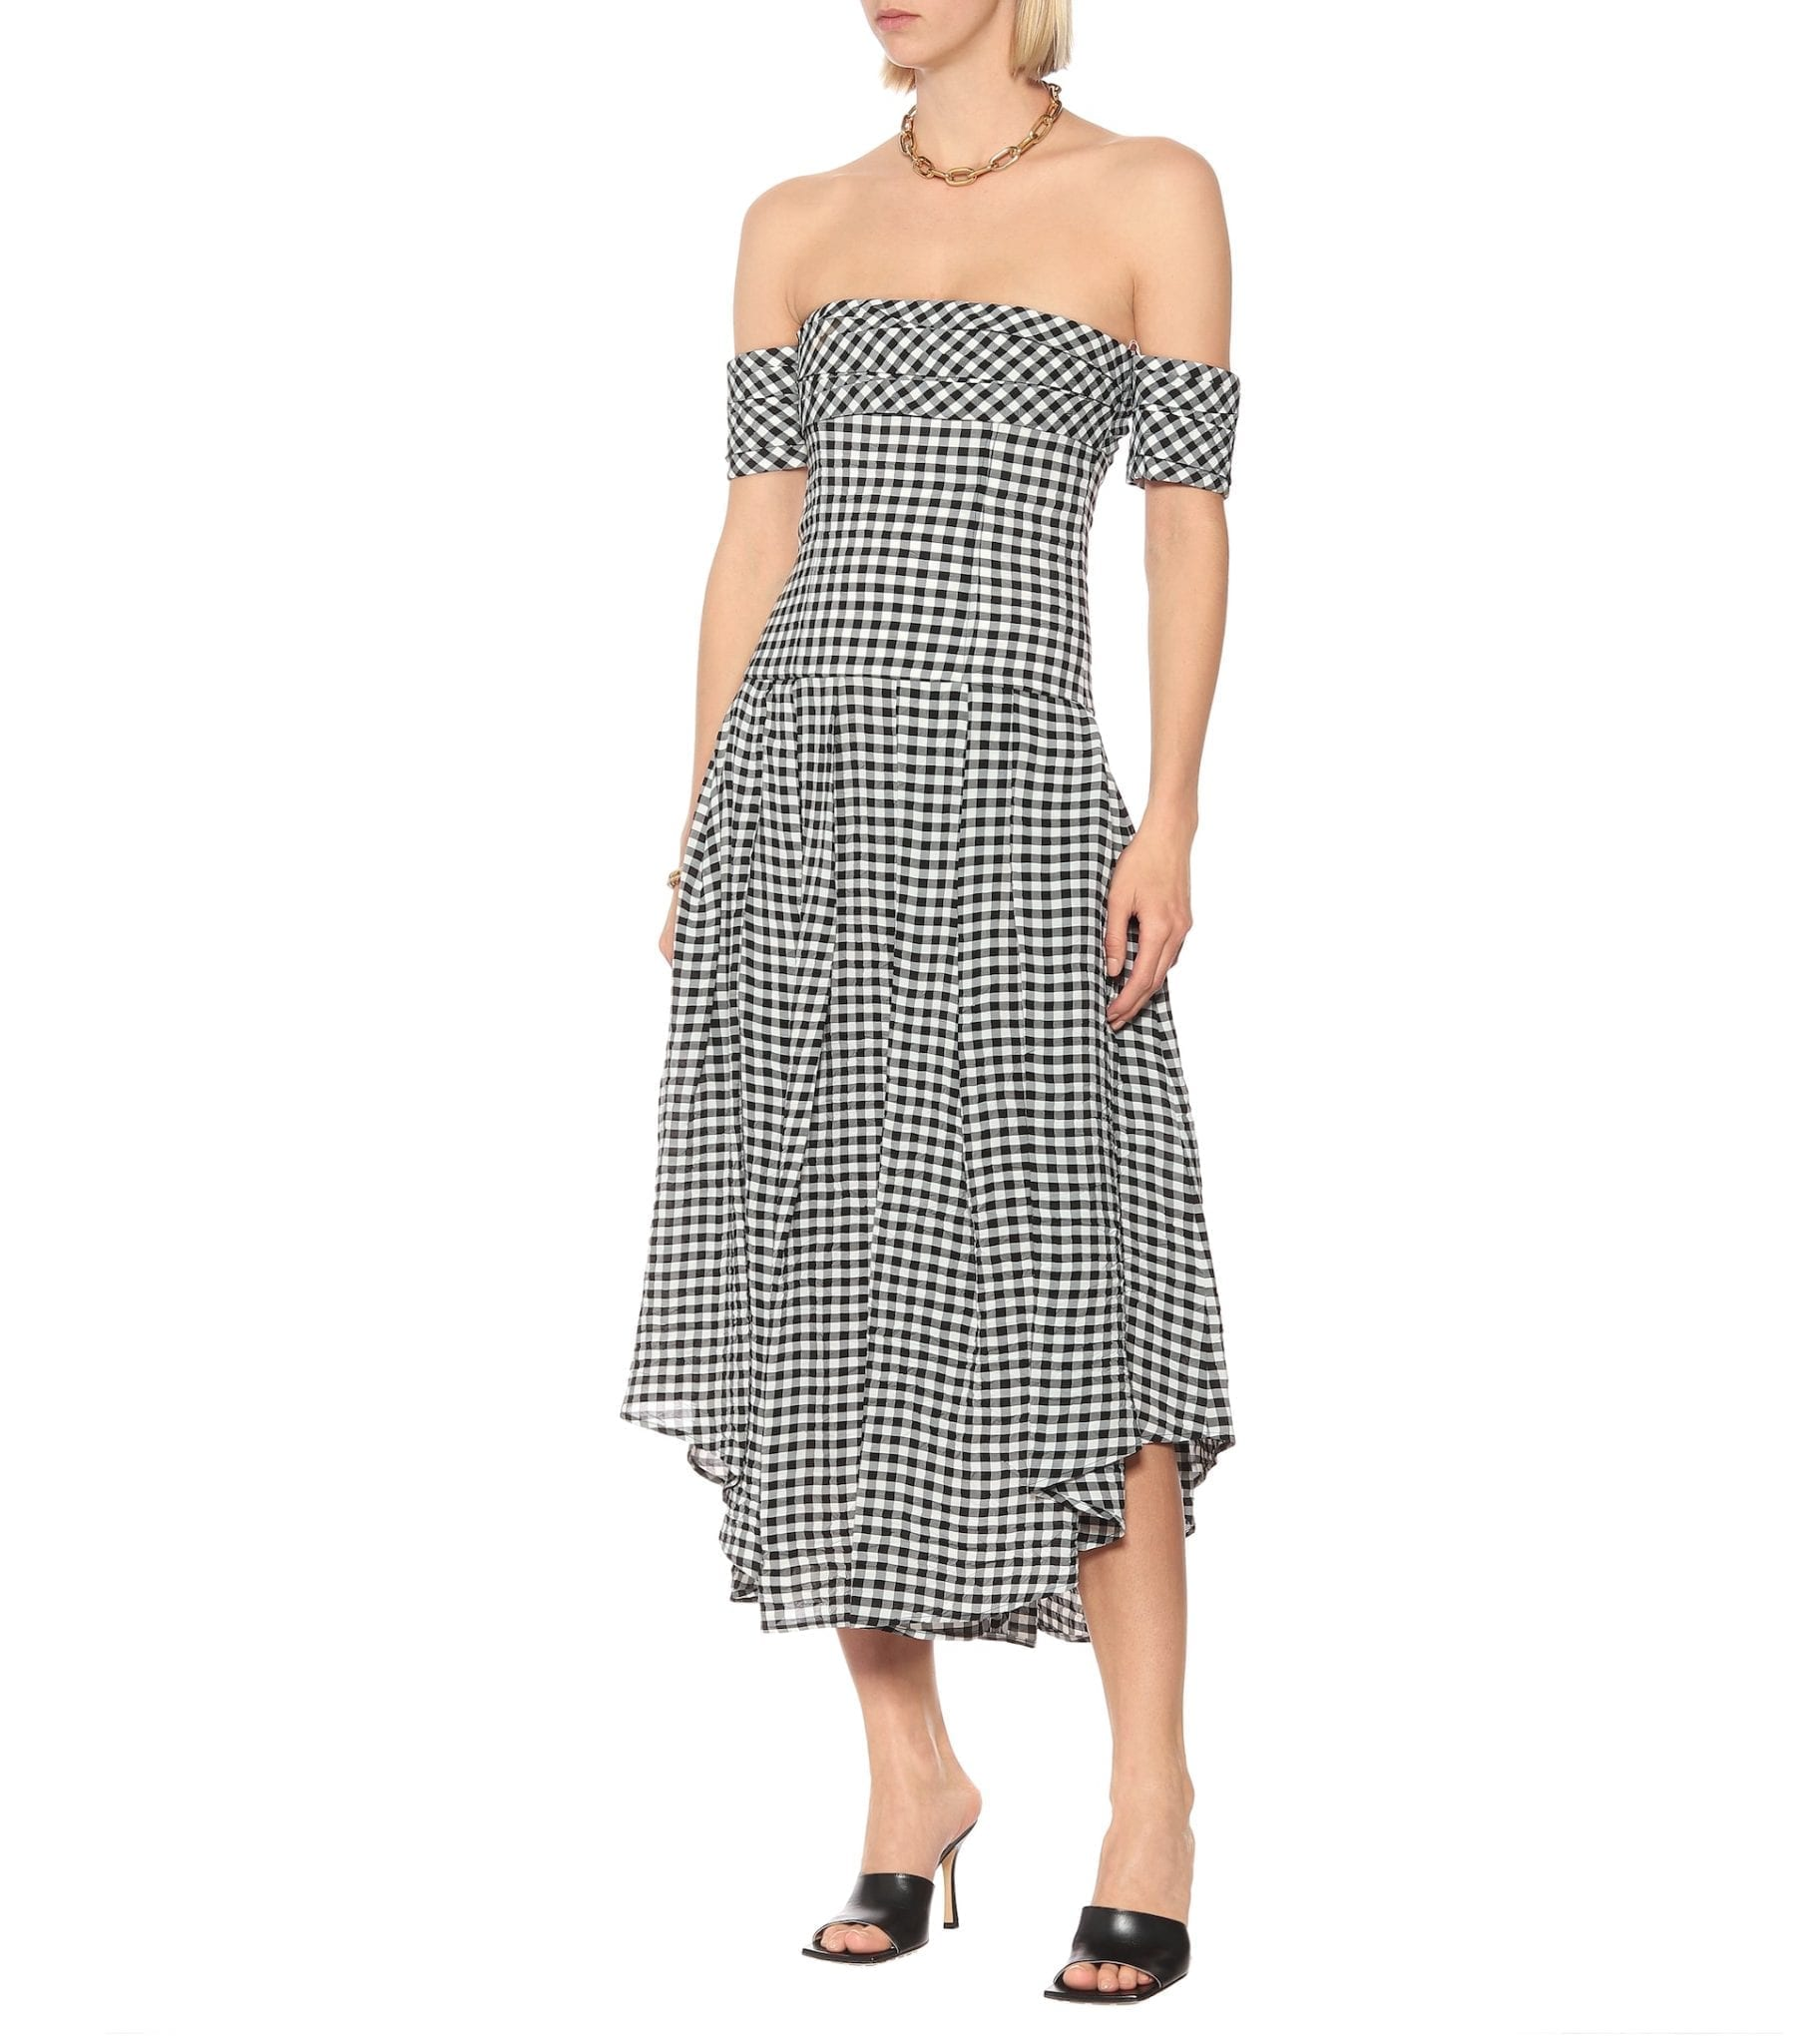 KHAITE Exclusive To Mytheresa – Amanda Gingham Midi Dress